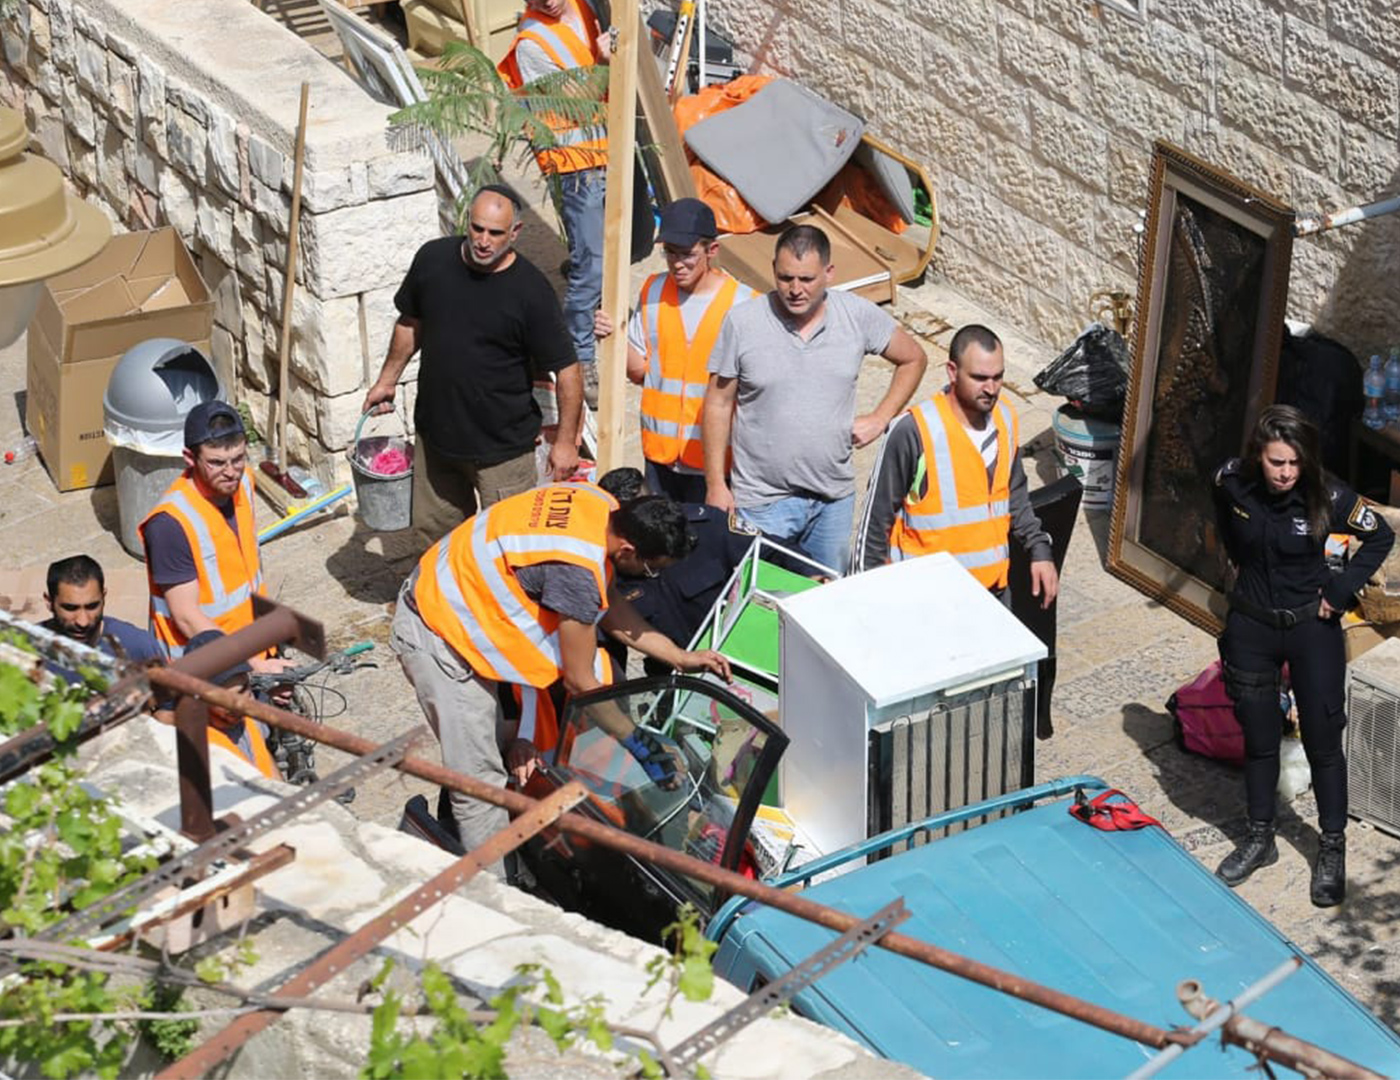 """One of the main sites Birthright takes participants is the """"City of David"""" located in East Jerusalem neighborhood of Silwan and owned by Elad, a settler organization that uses the funds to evict Palestinians in the neighborhood. This image shows the eviction of a Palestinian family from Silwan in April 2018.  Image: Emil Salman"""